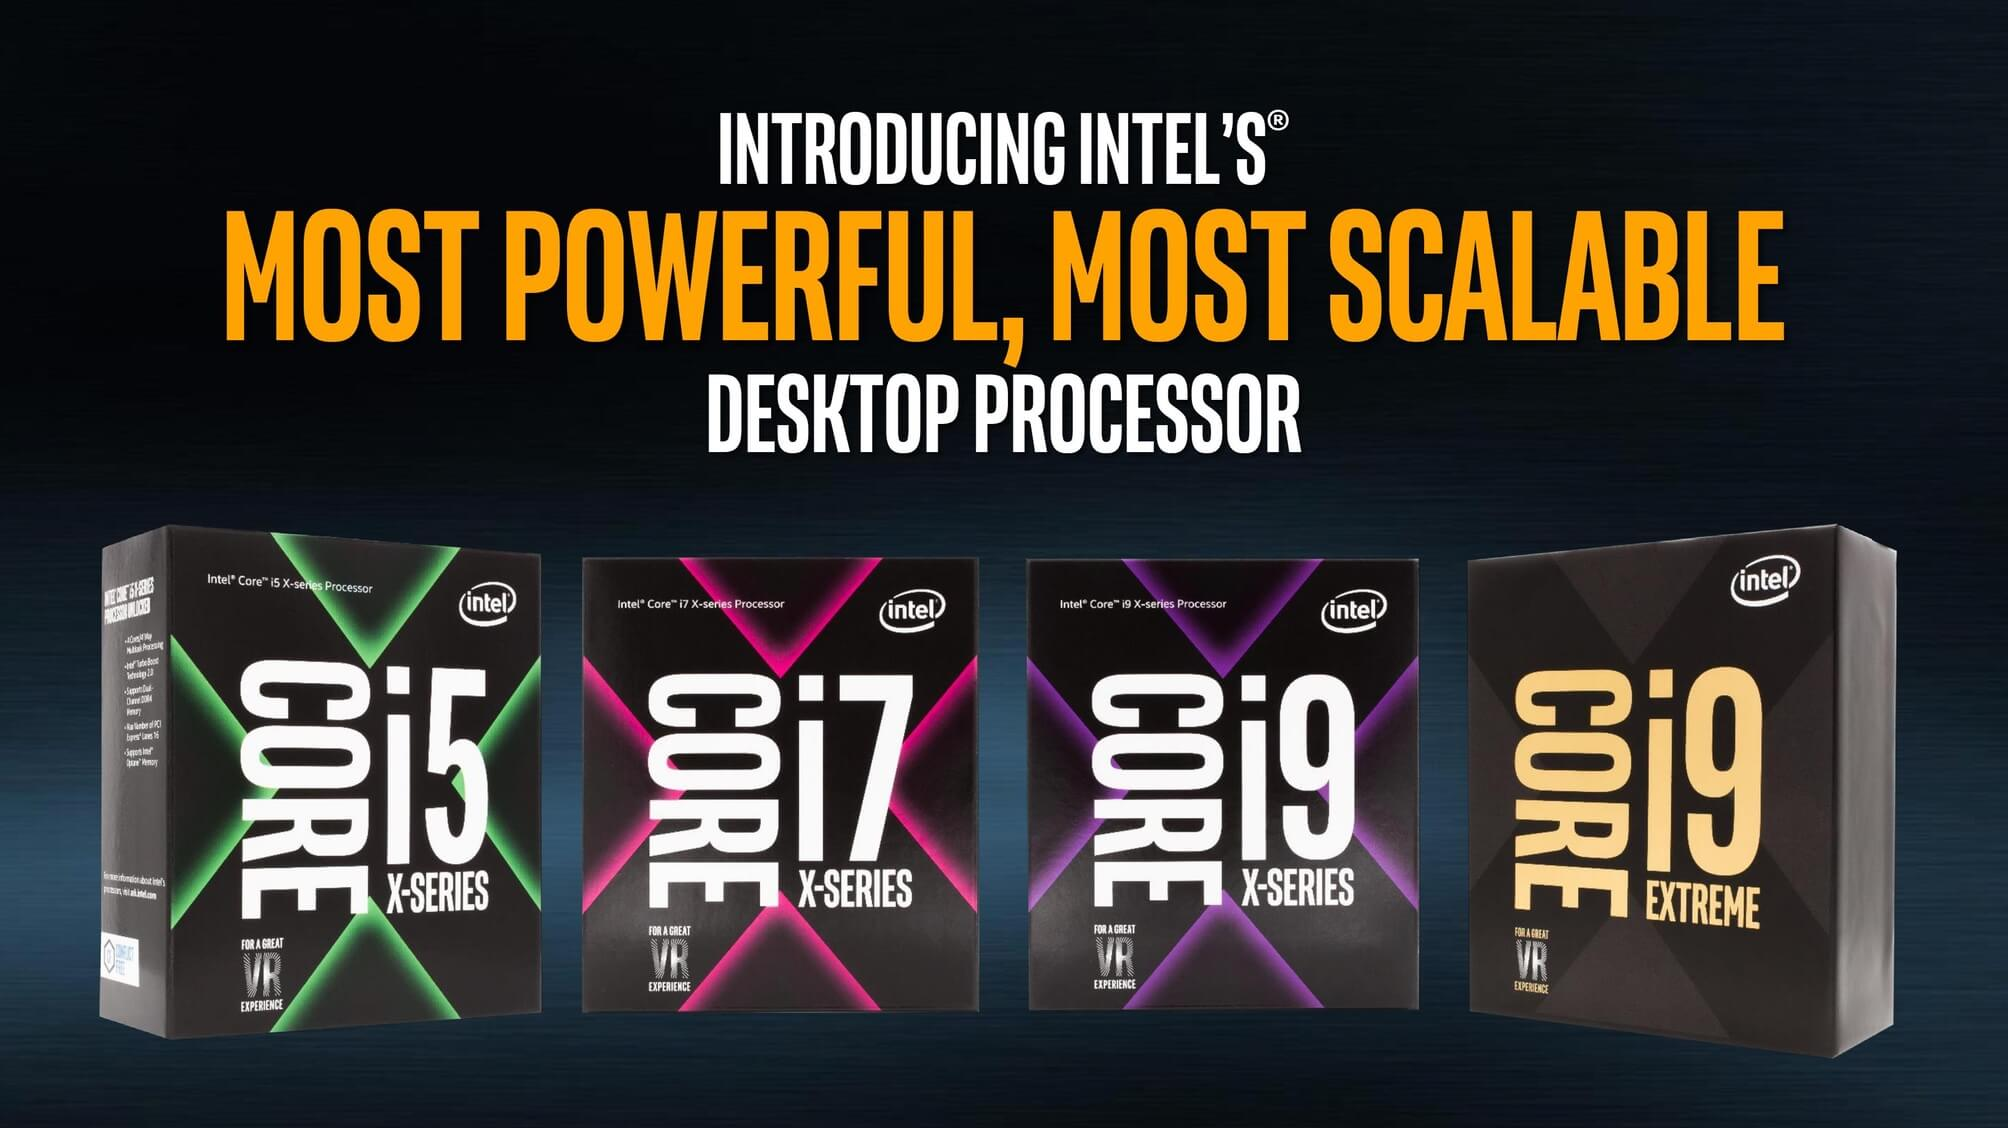 Intel unveils new X-series processors, including the $2,000 18-core/36-thread i9 chip